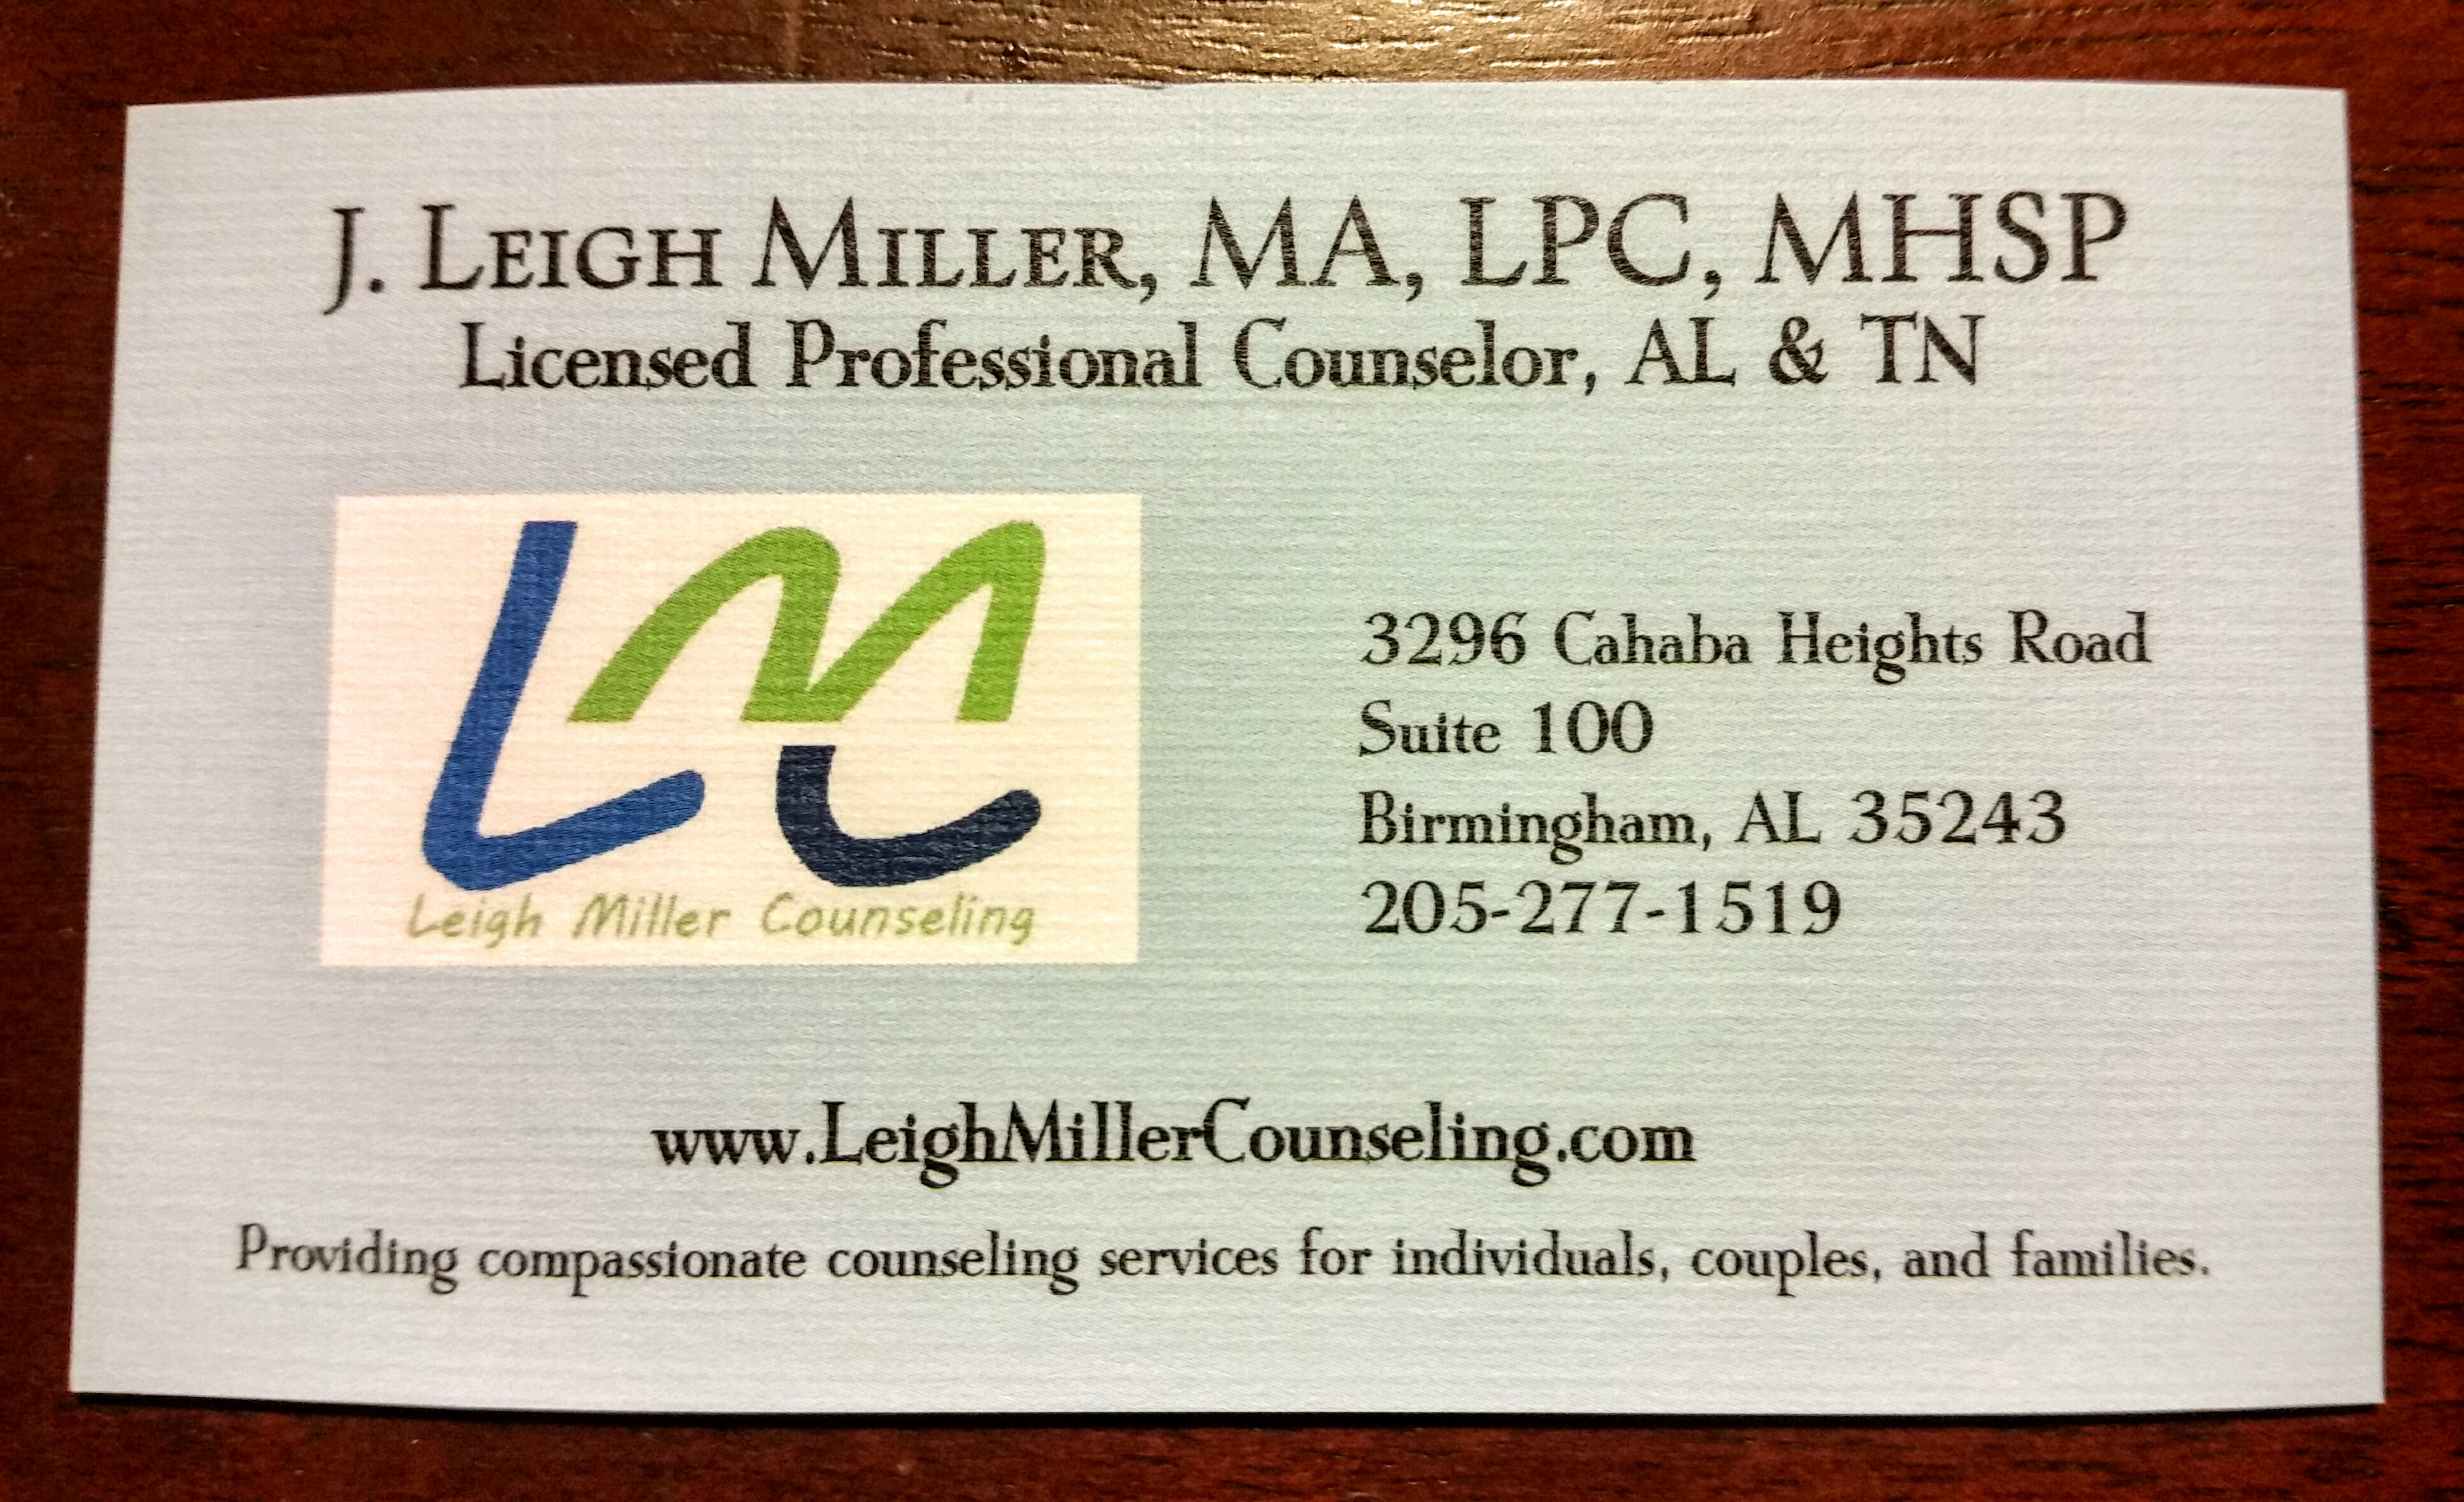 leigh miller counseling 3296 cahaba heights rd suite 100